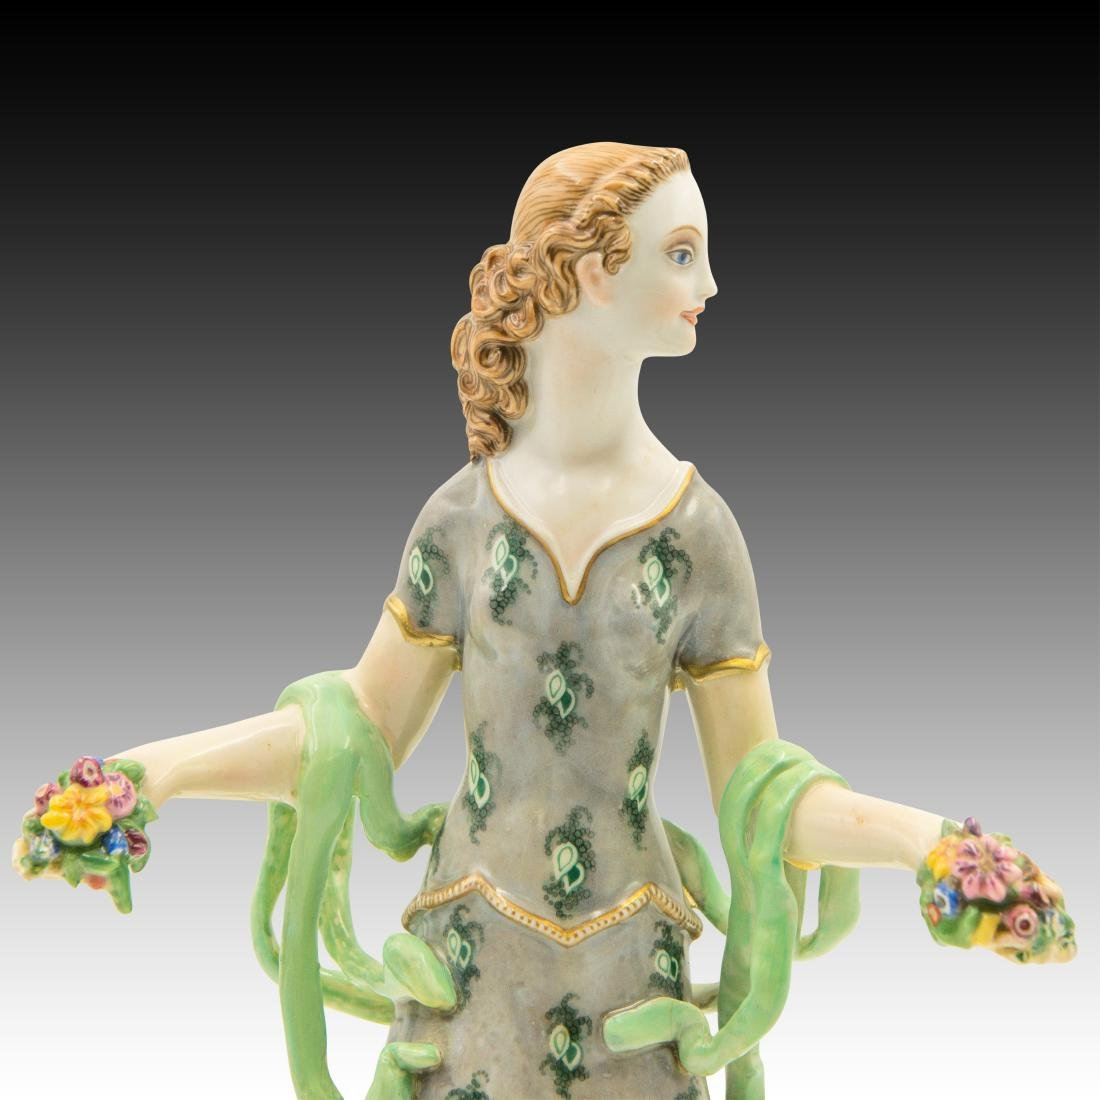 Wein Female with Flowers in her Hands Figurine - 5